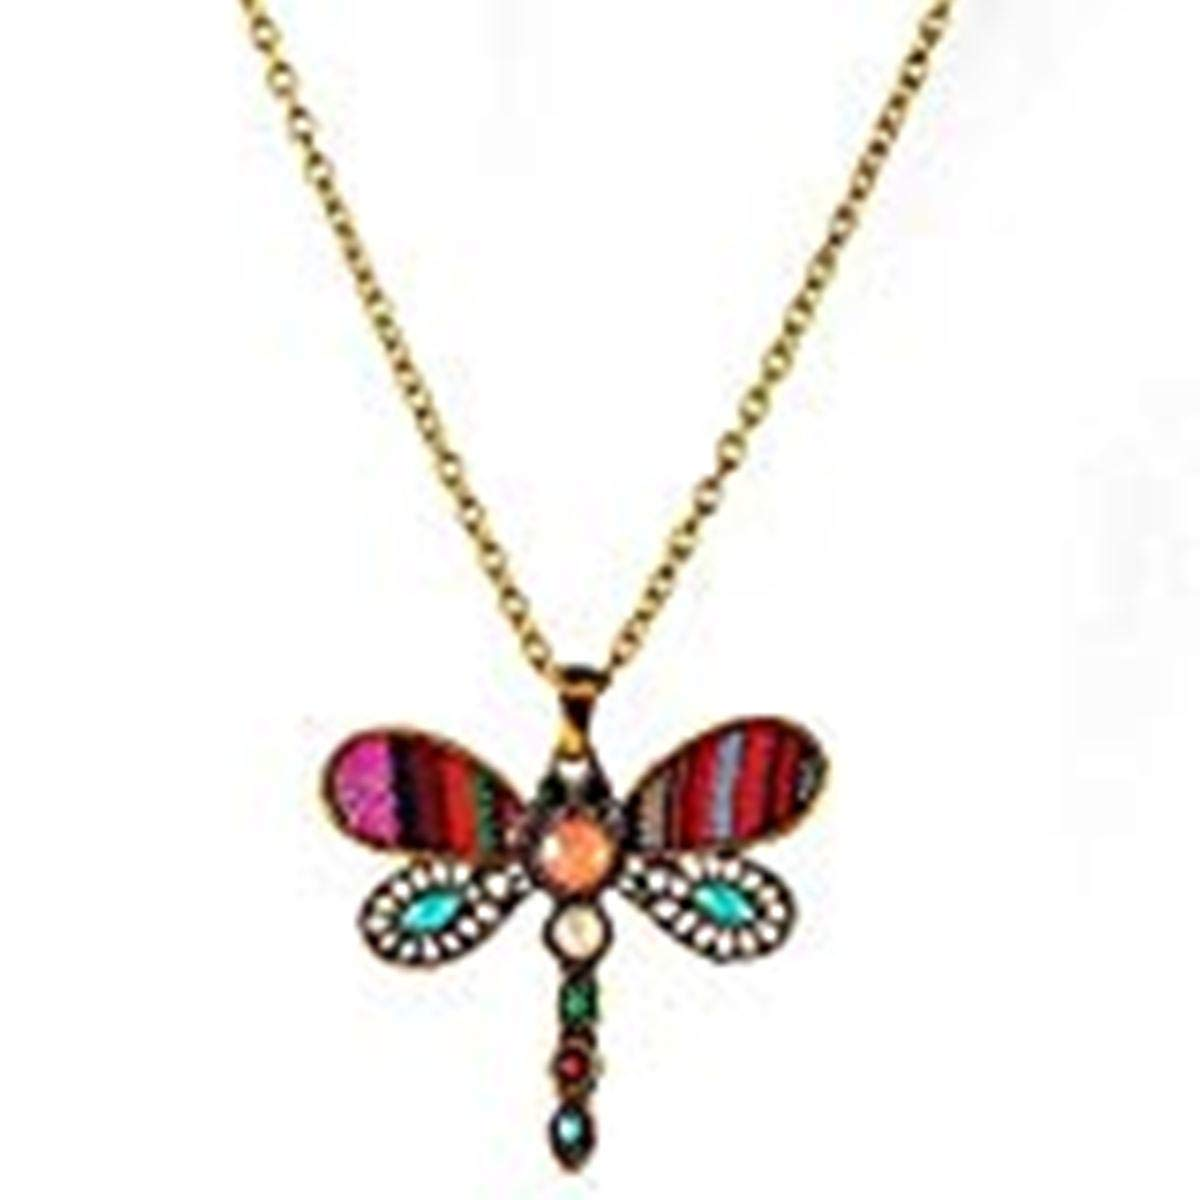 TOKENZ Dragonfly Design Long Chain Fashion Pendant Necklace with Multi Colored Stones Artistic Threadwork for Women and Girls